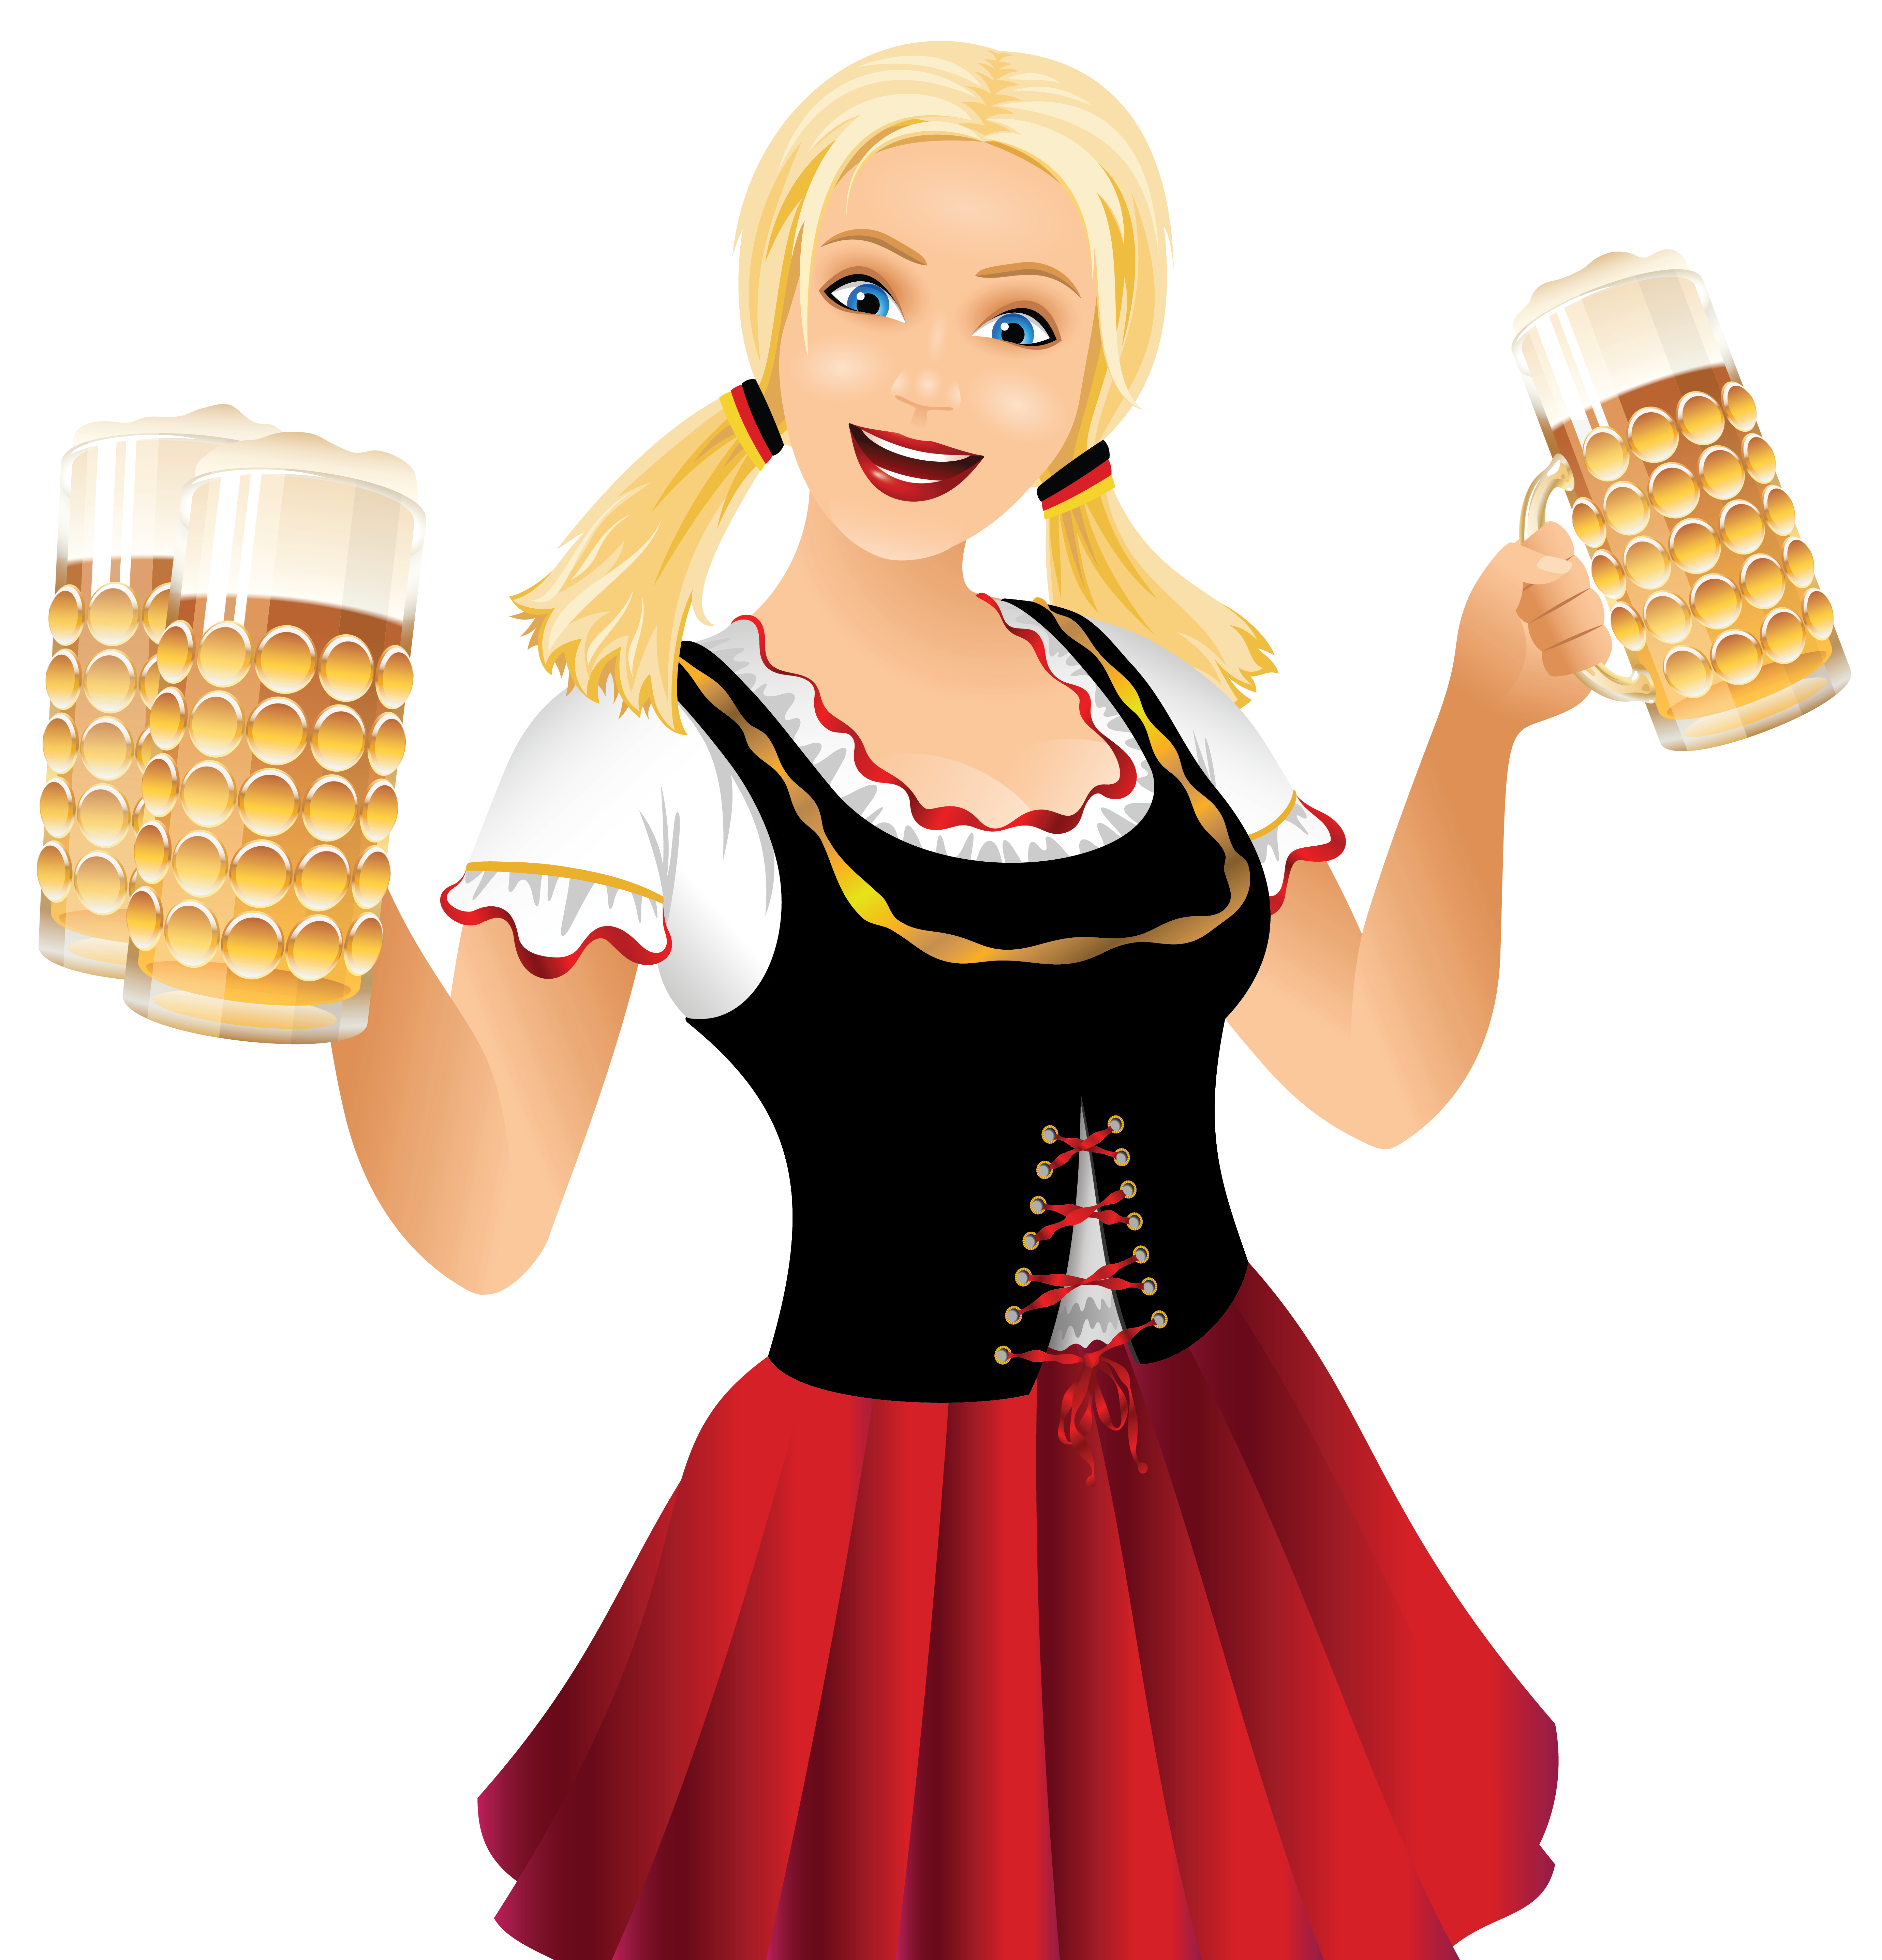 Oktoberfest clipart png picture Oktoberfest Girl with Beer Mugs PNG Clipart Picture | Gallery ... picture